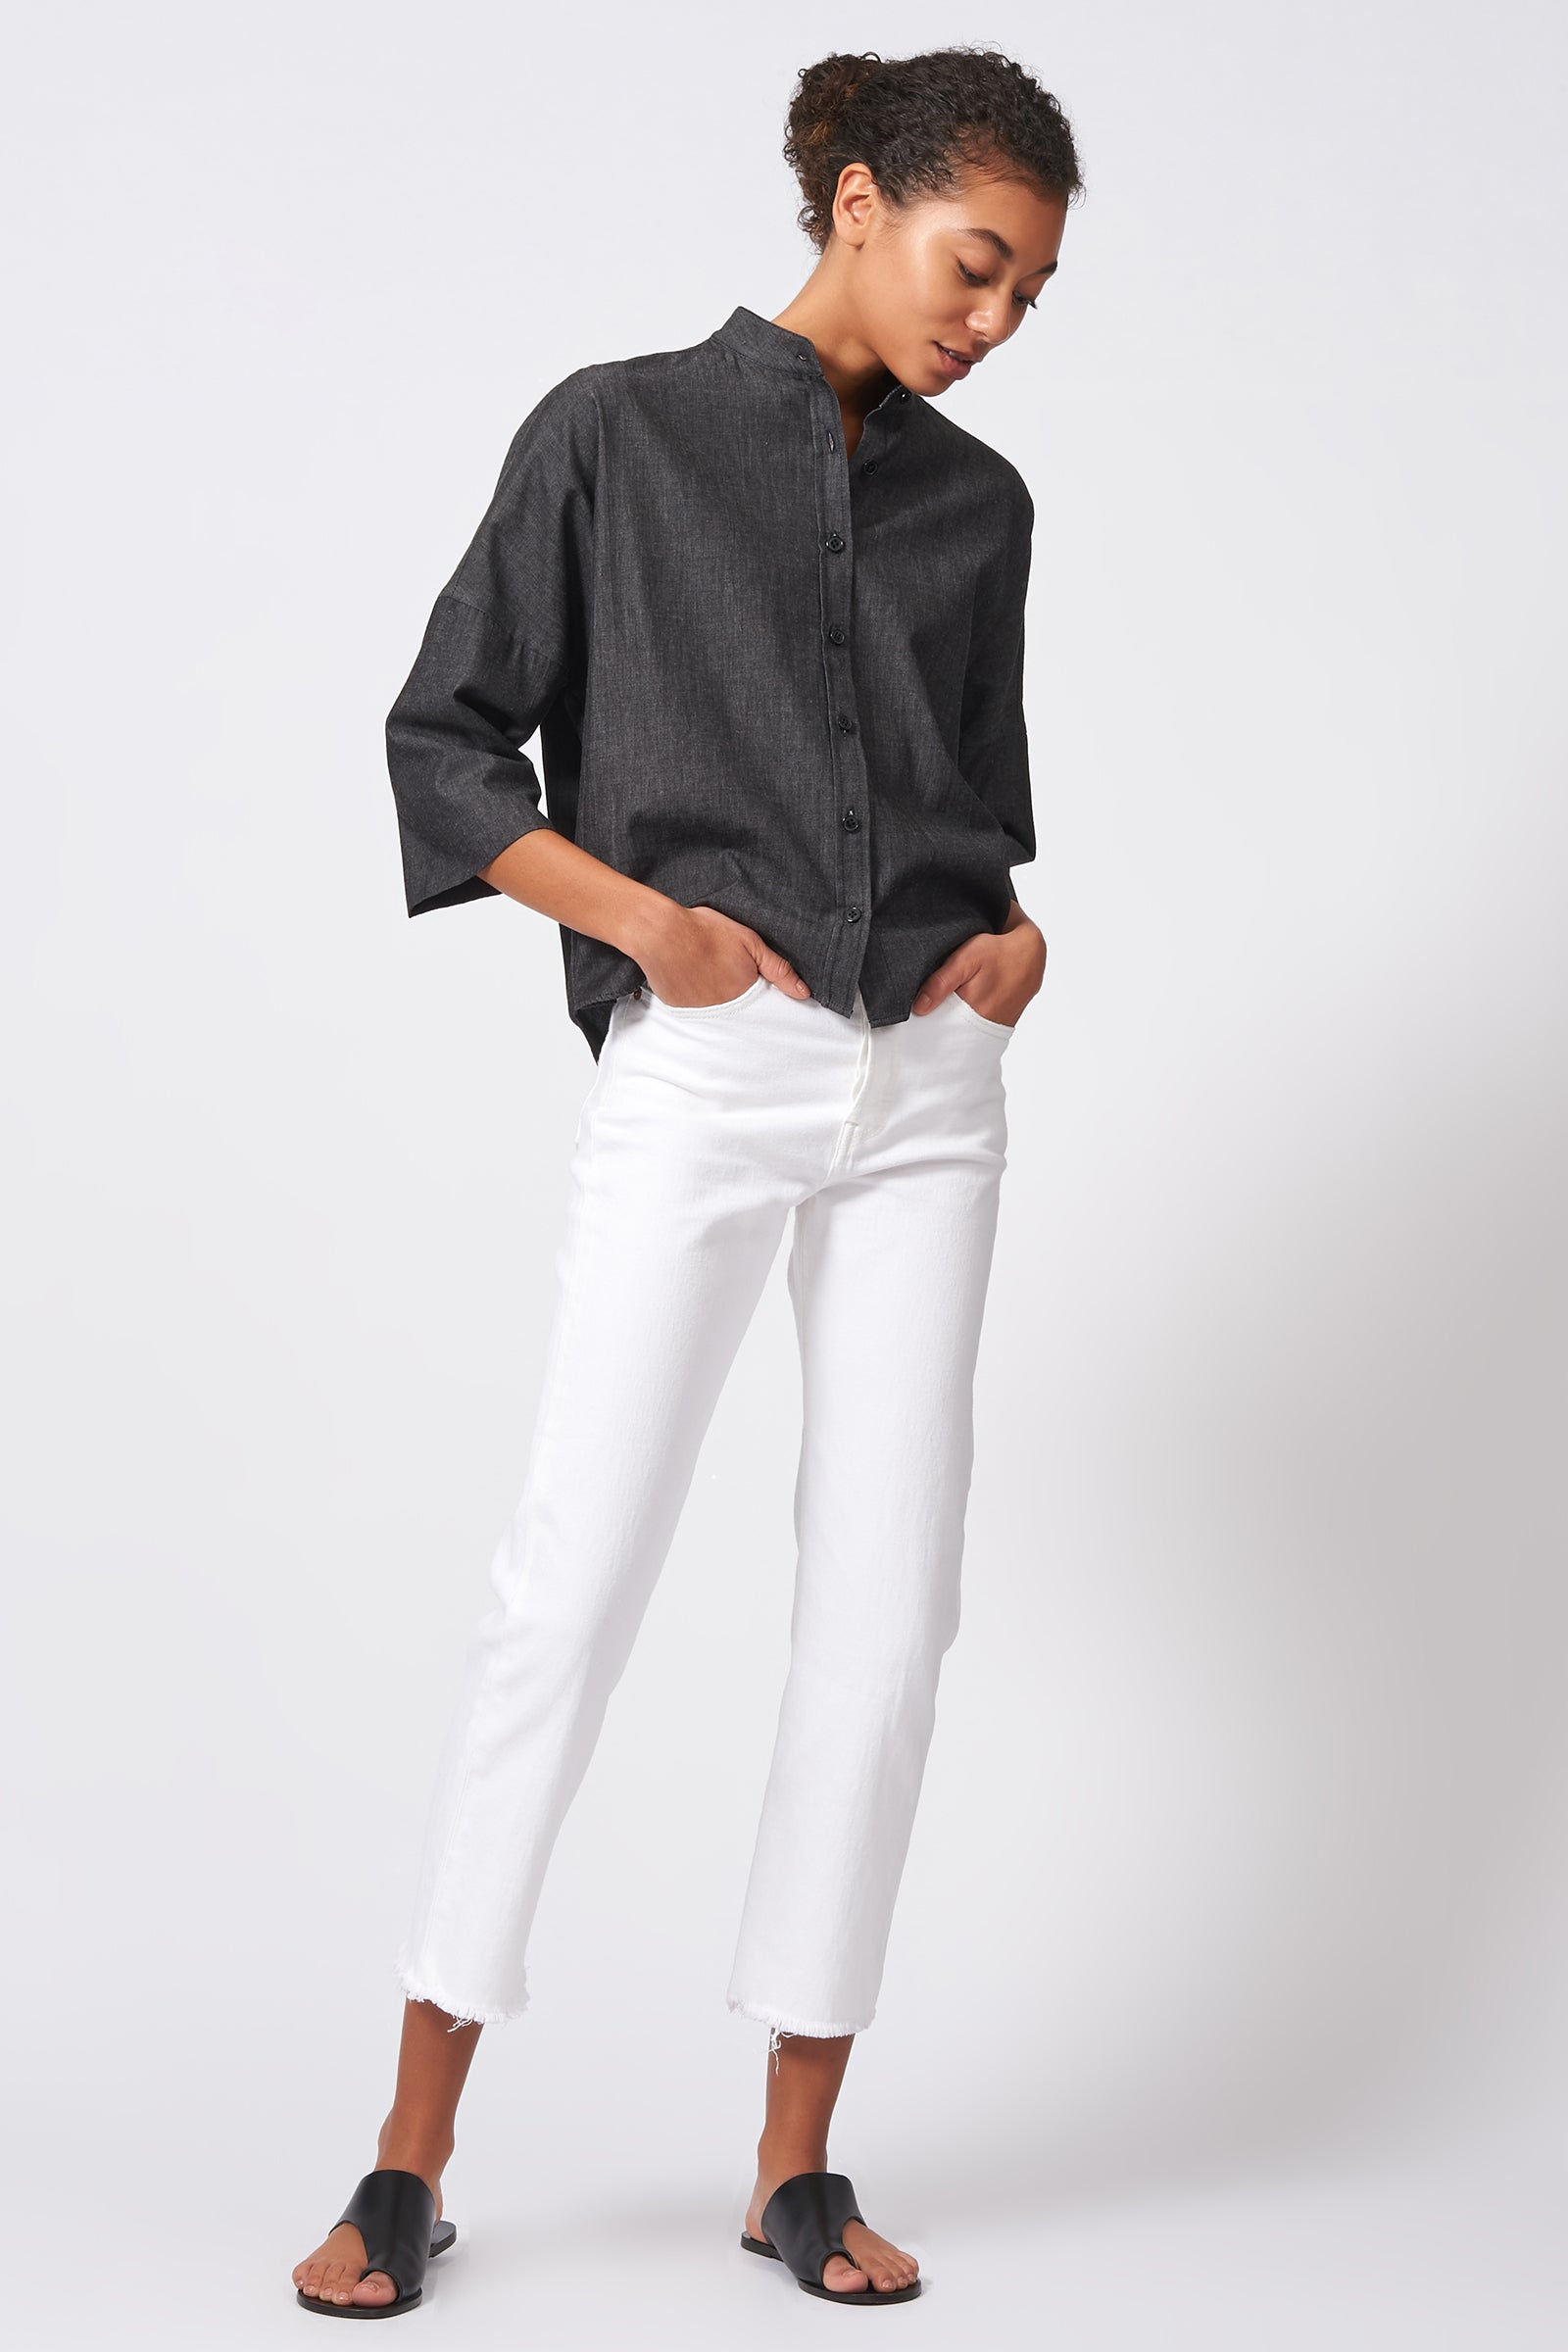 Kal Rieman Drop Shoulder Top in Dark Denim on Model Front Side Full View